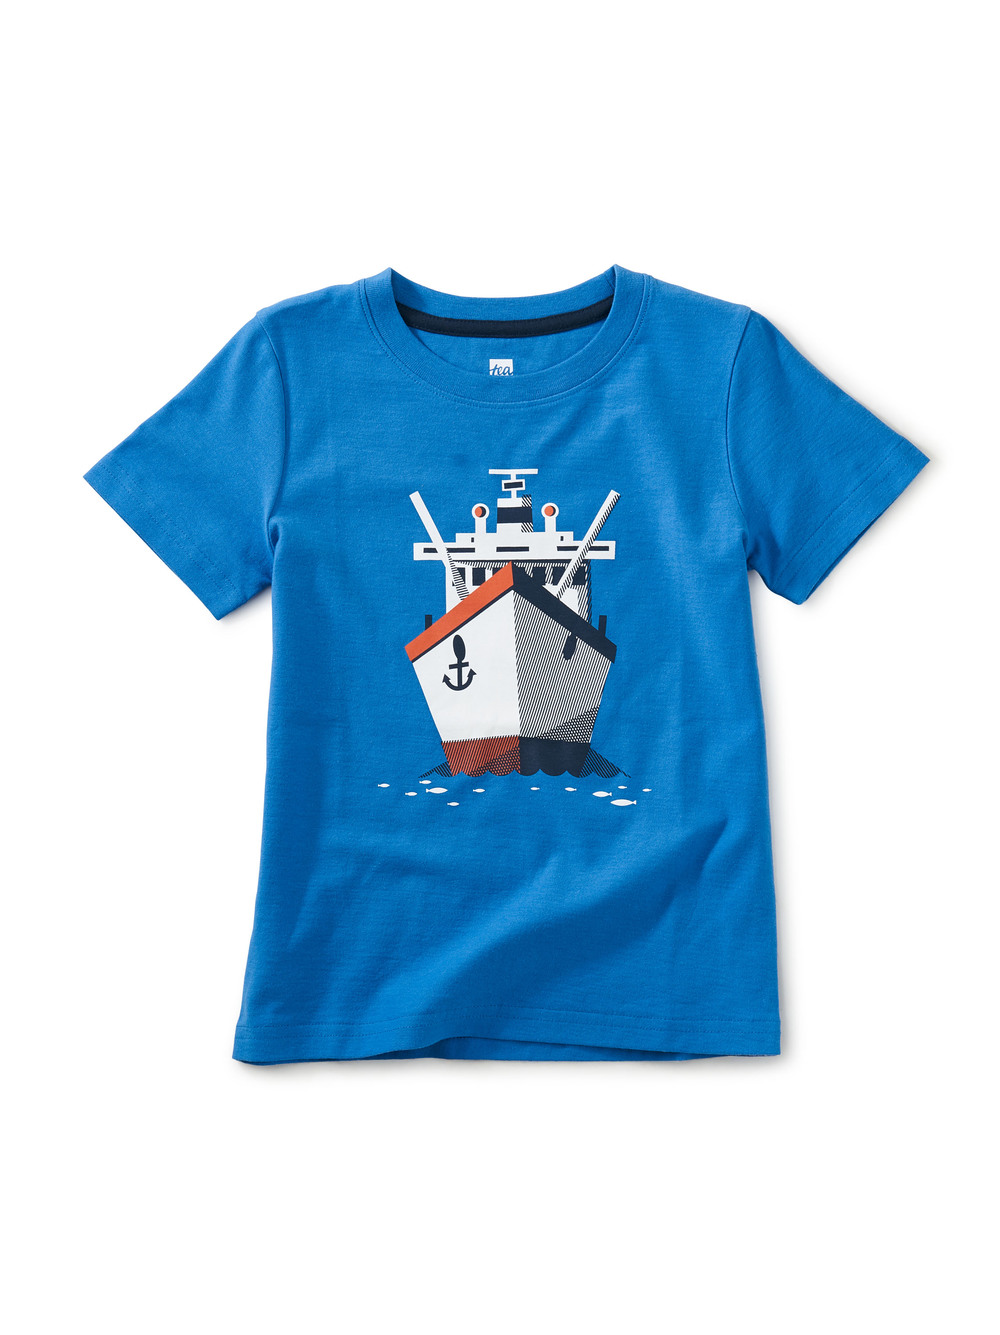 Boat Afloat Graphic Tee